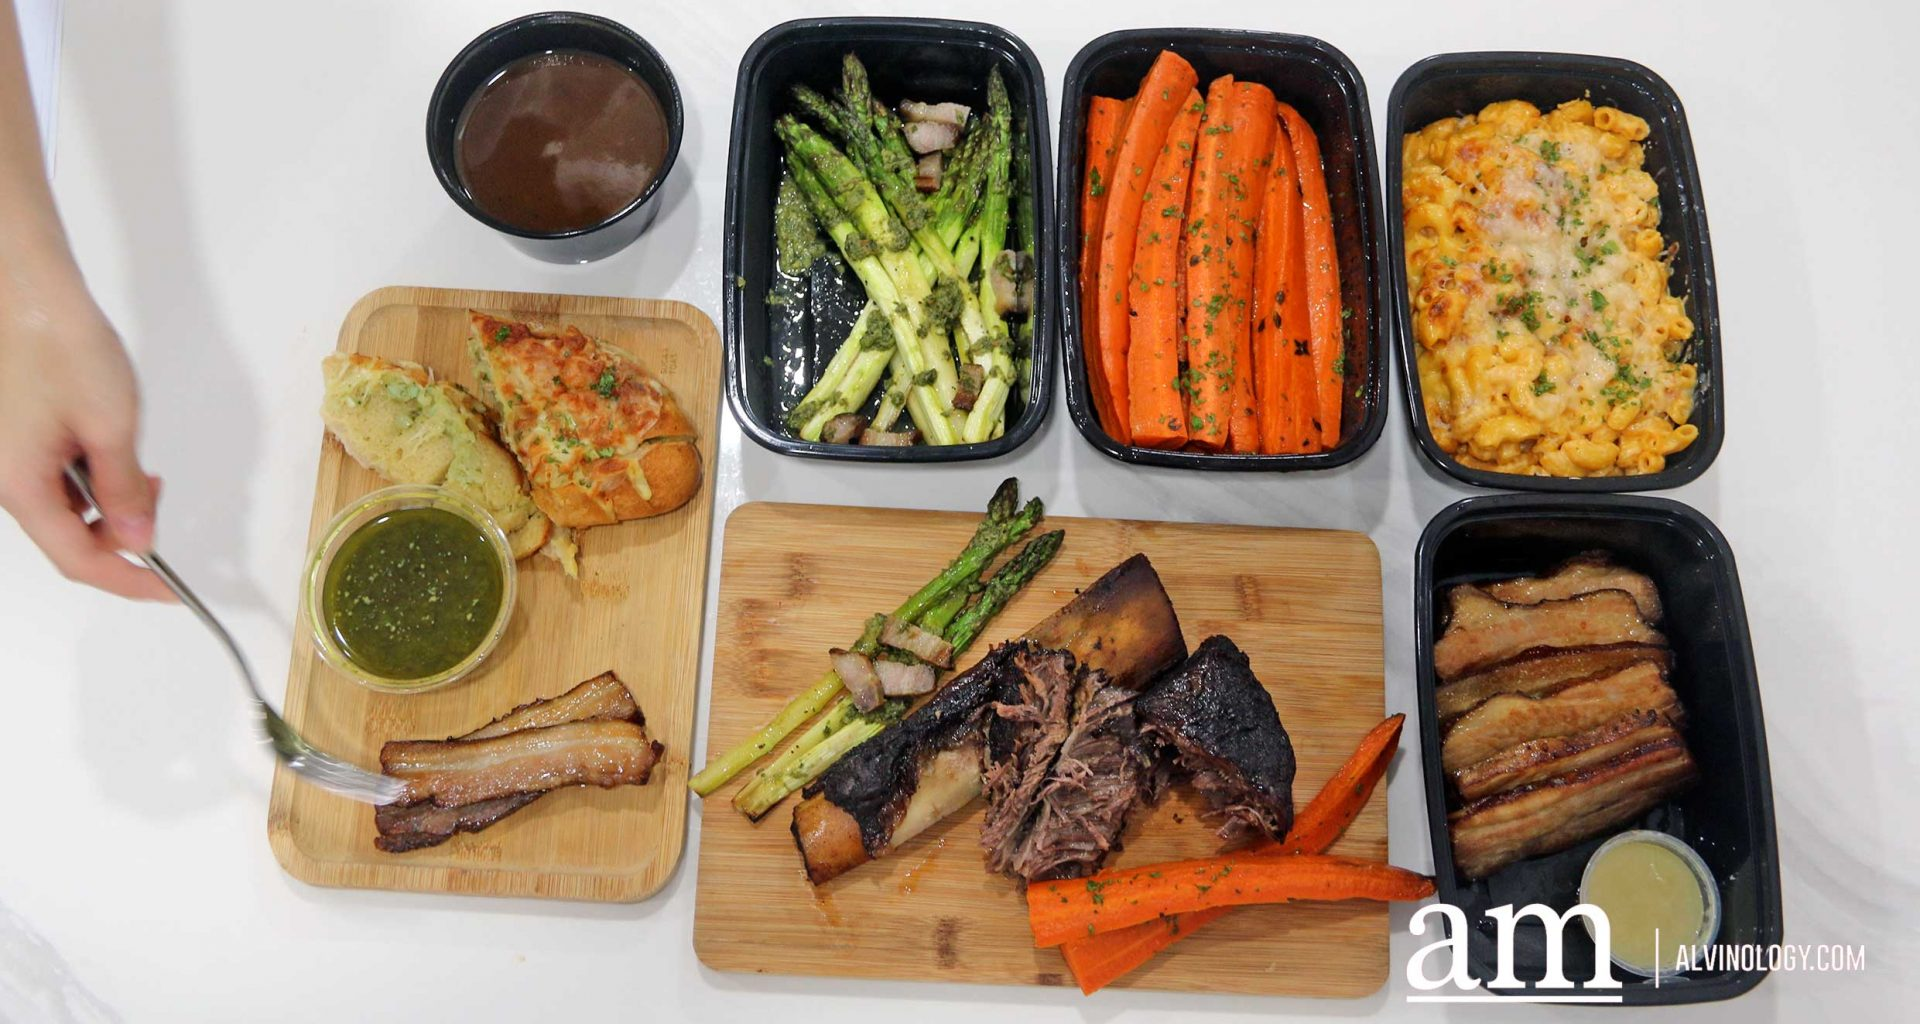 [PROMO CODE inside] Sunday Catering's Father's Day menu for a Stay-home Family Feast - Alvinology